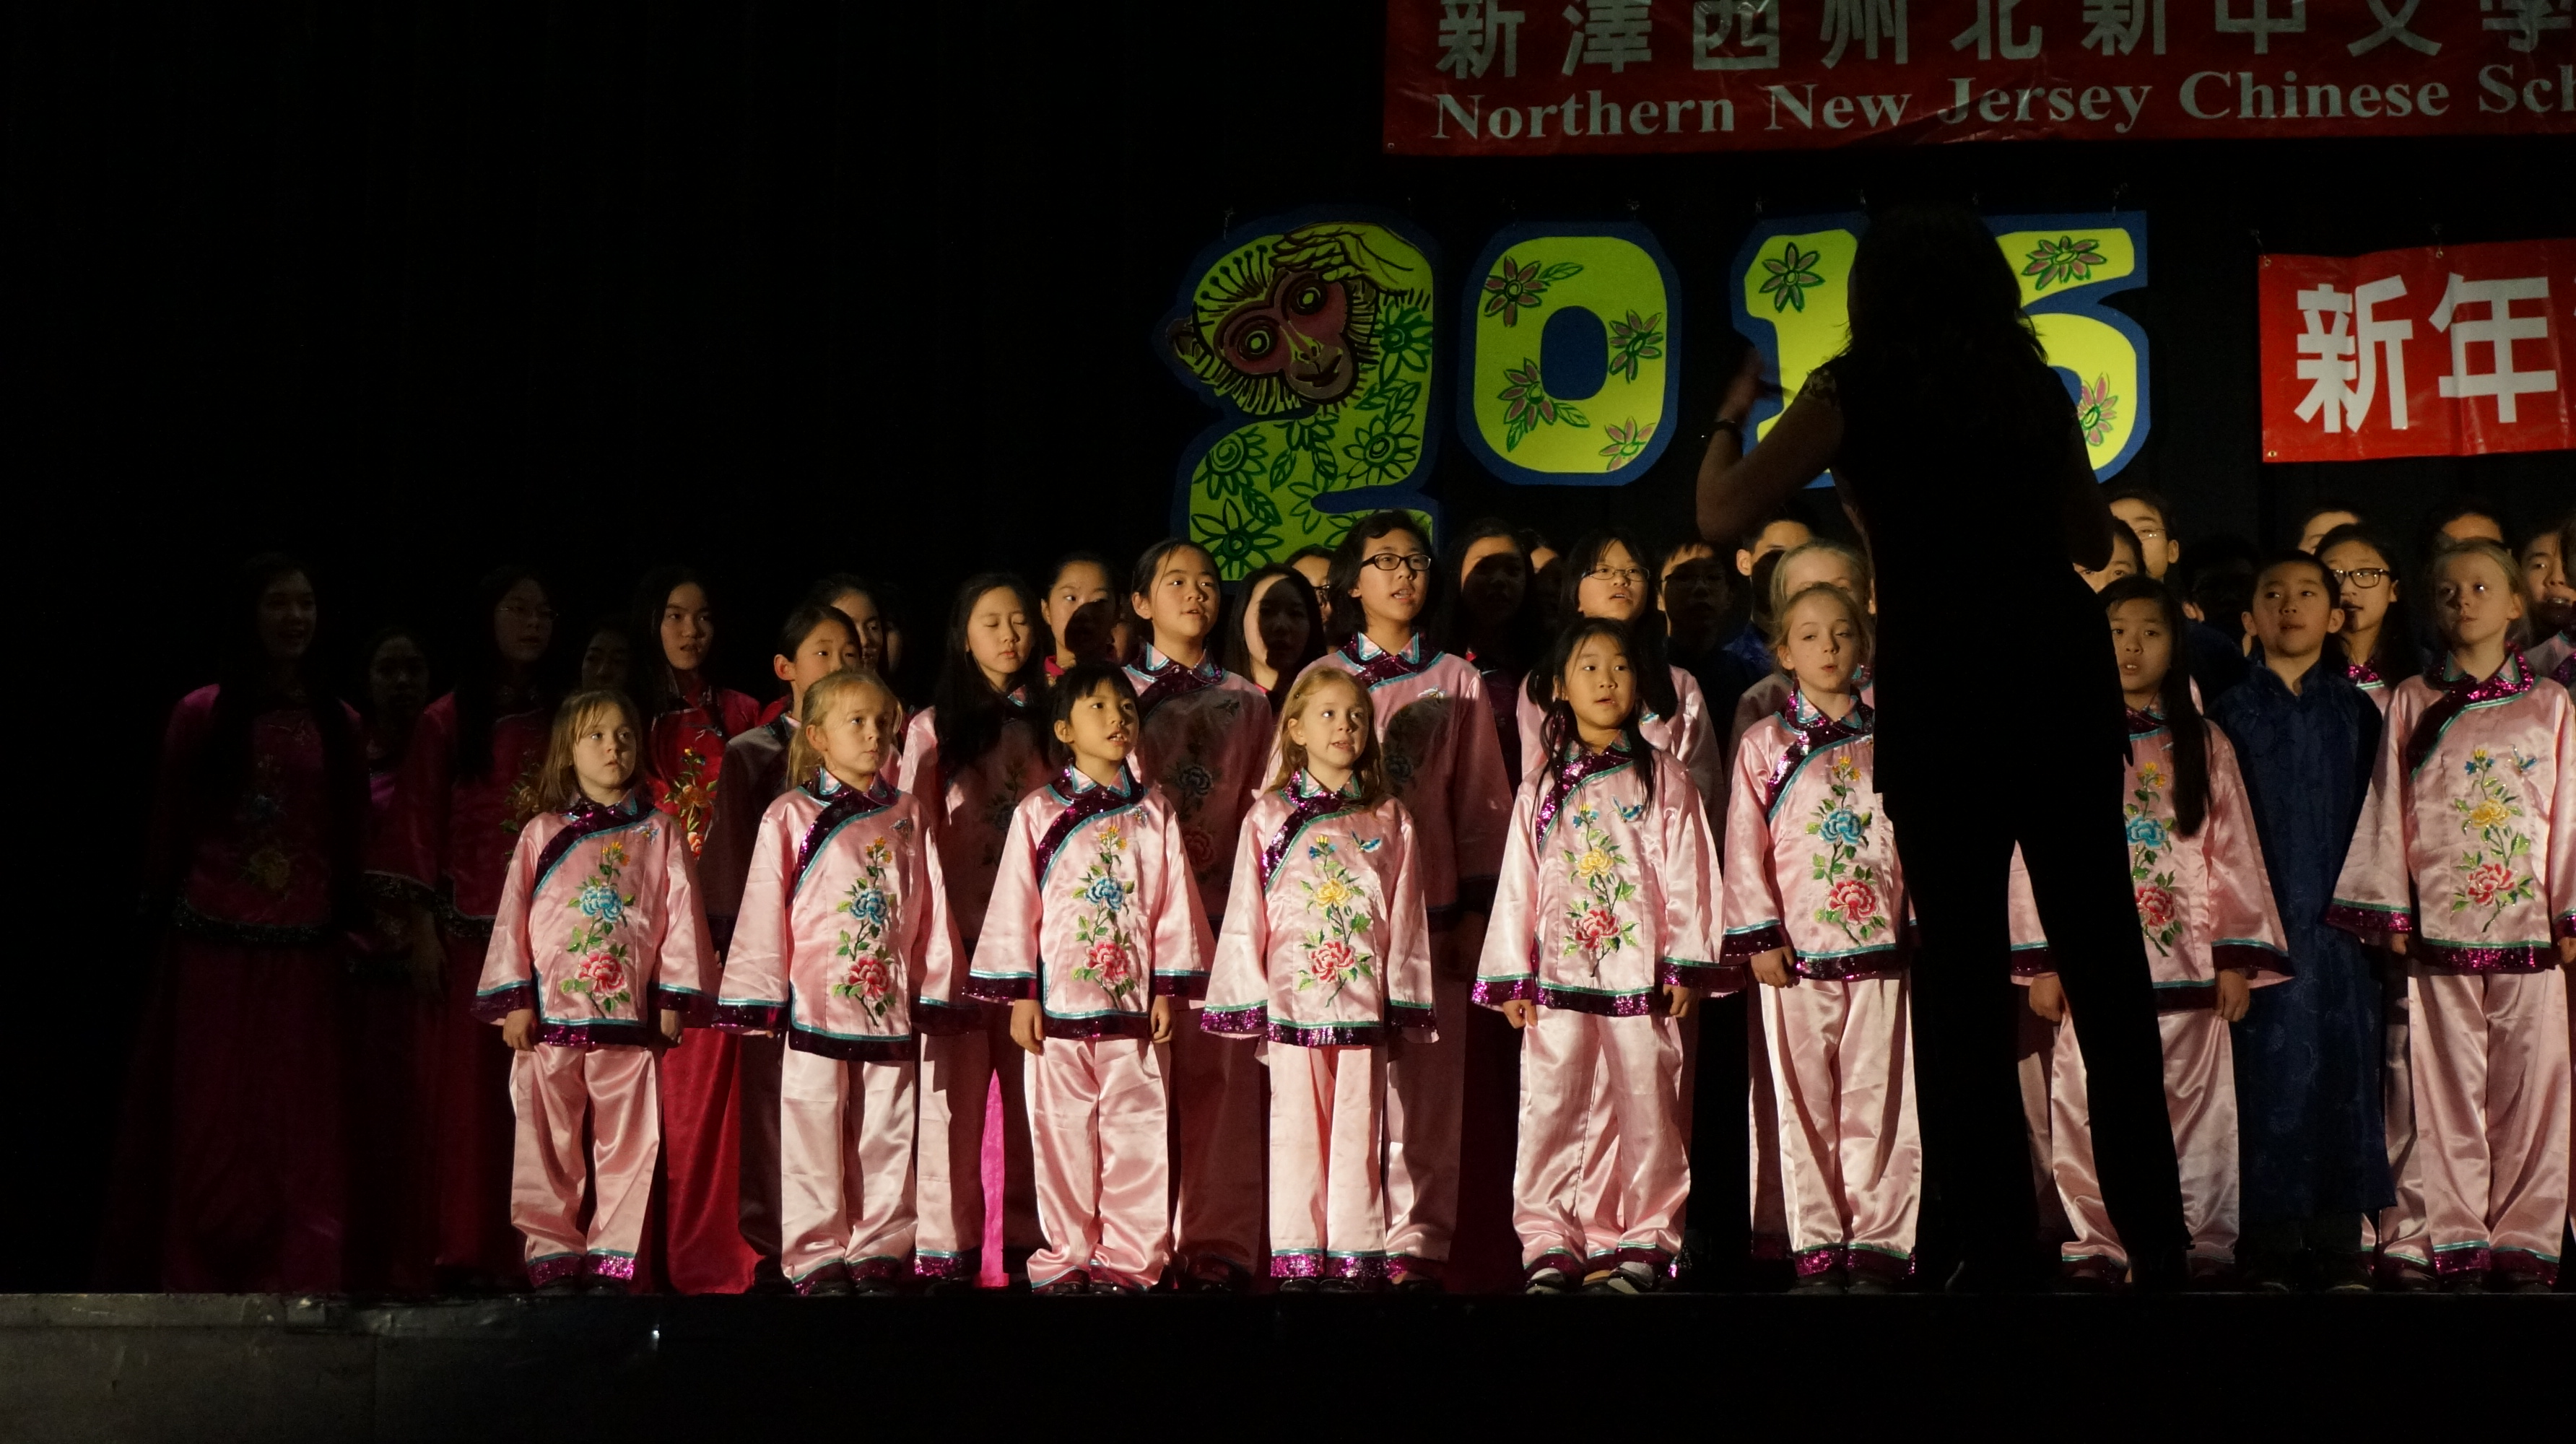 Chinese New Year Celebrated at Northern New Jersey Chinese Association